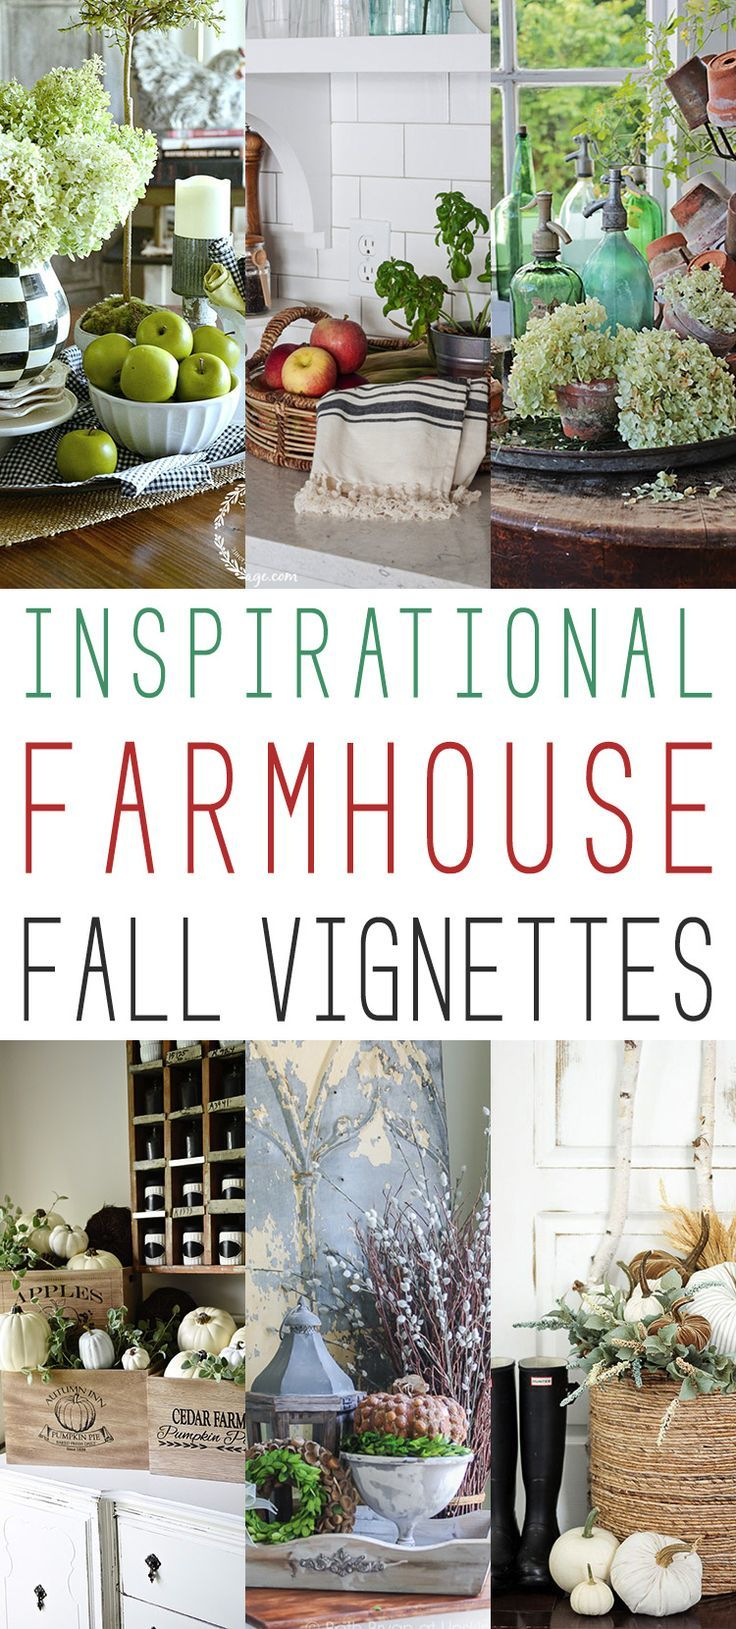 20 Inspirational Farmhouse Fall Vignettes - The Cottage Market